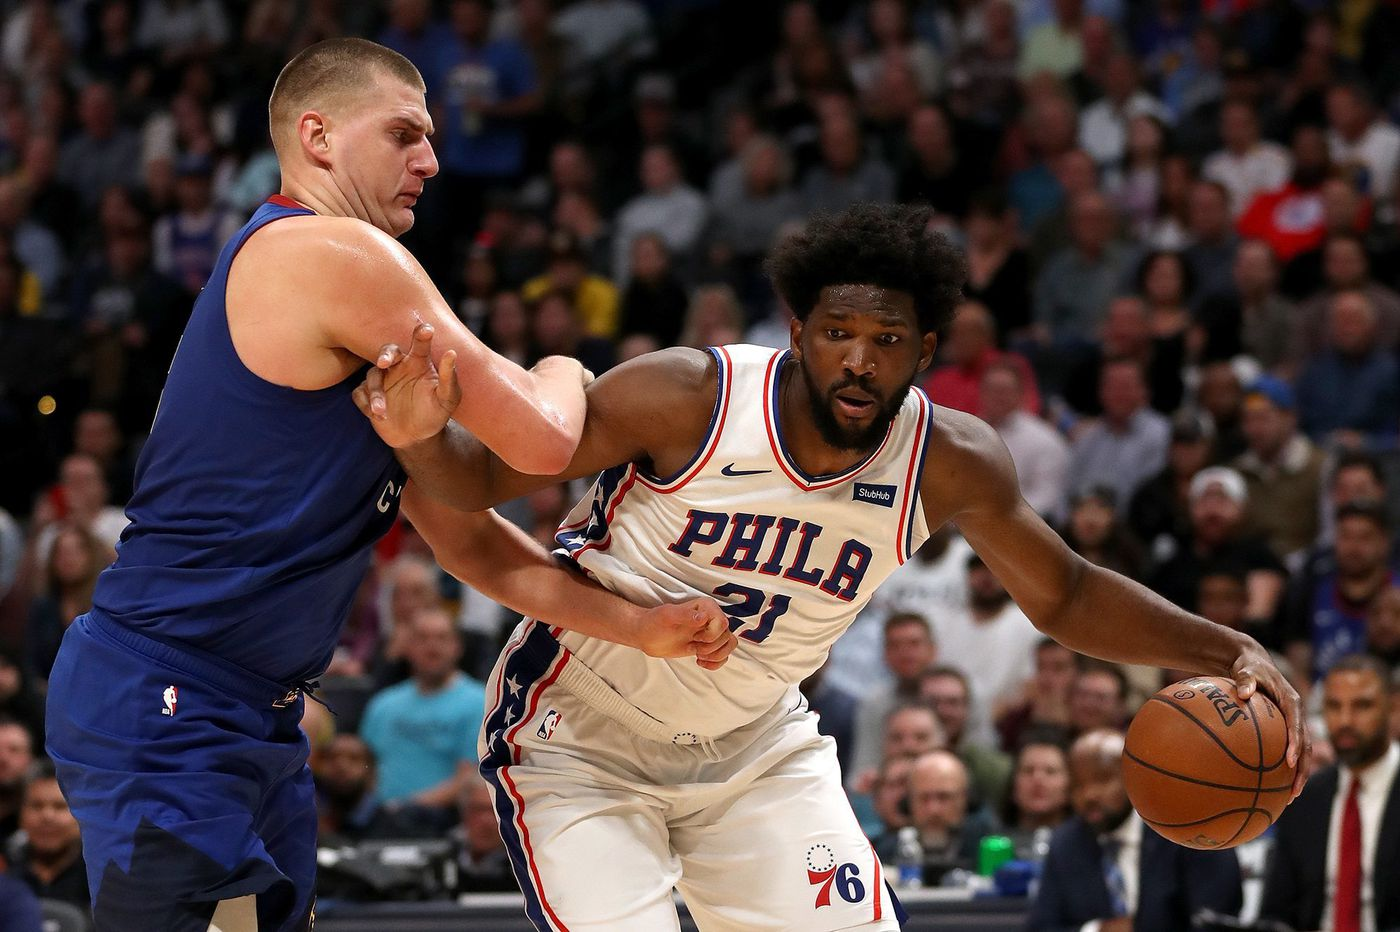 NBA report states Joel Embiid was actually fouled by Nikola Jokic with .9 of a second left